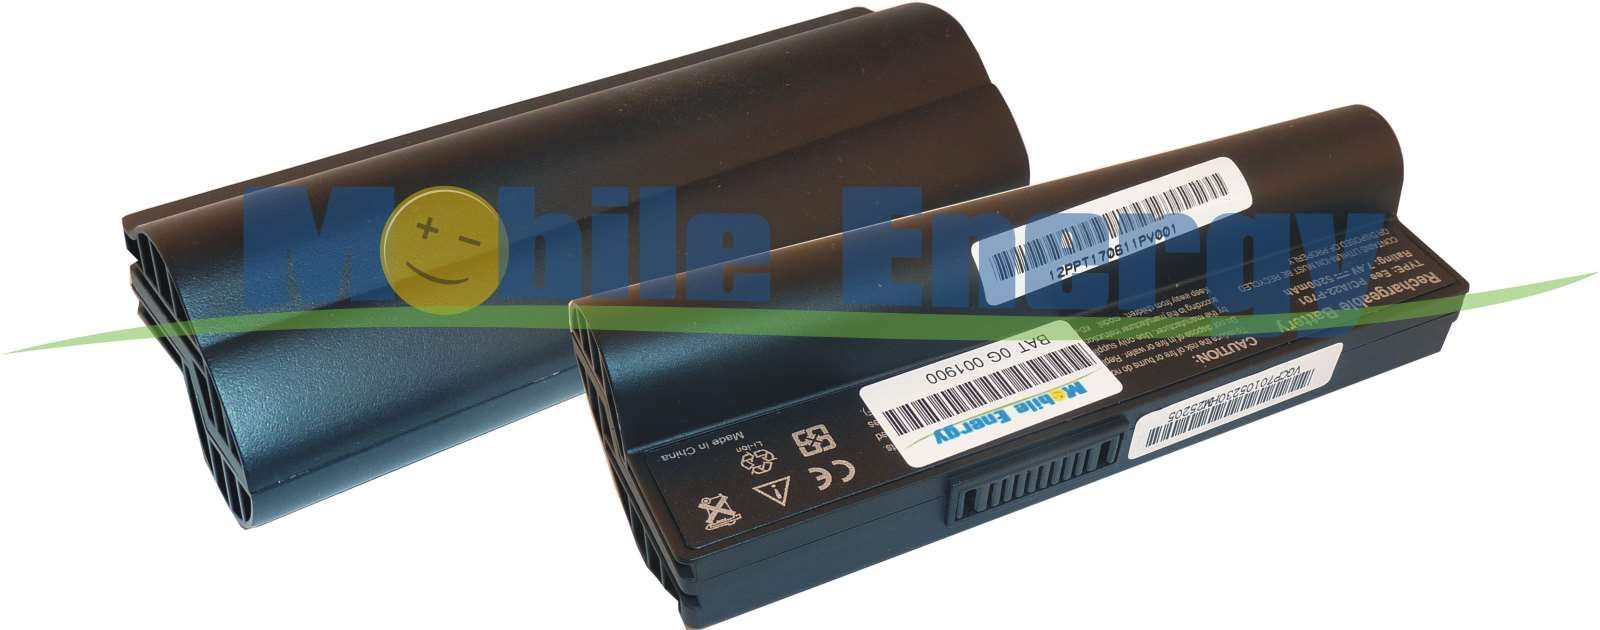 Mobile-Energy Baterie ASUS Eee PC 2G / PC 4G / PC 700 / PC 701 /